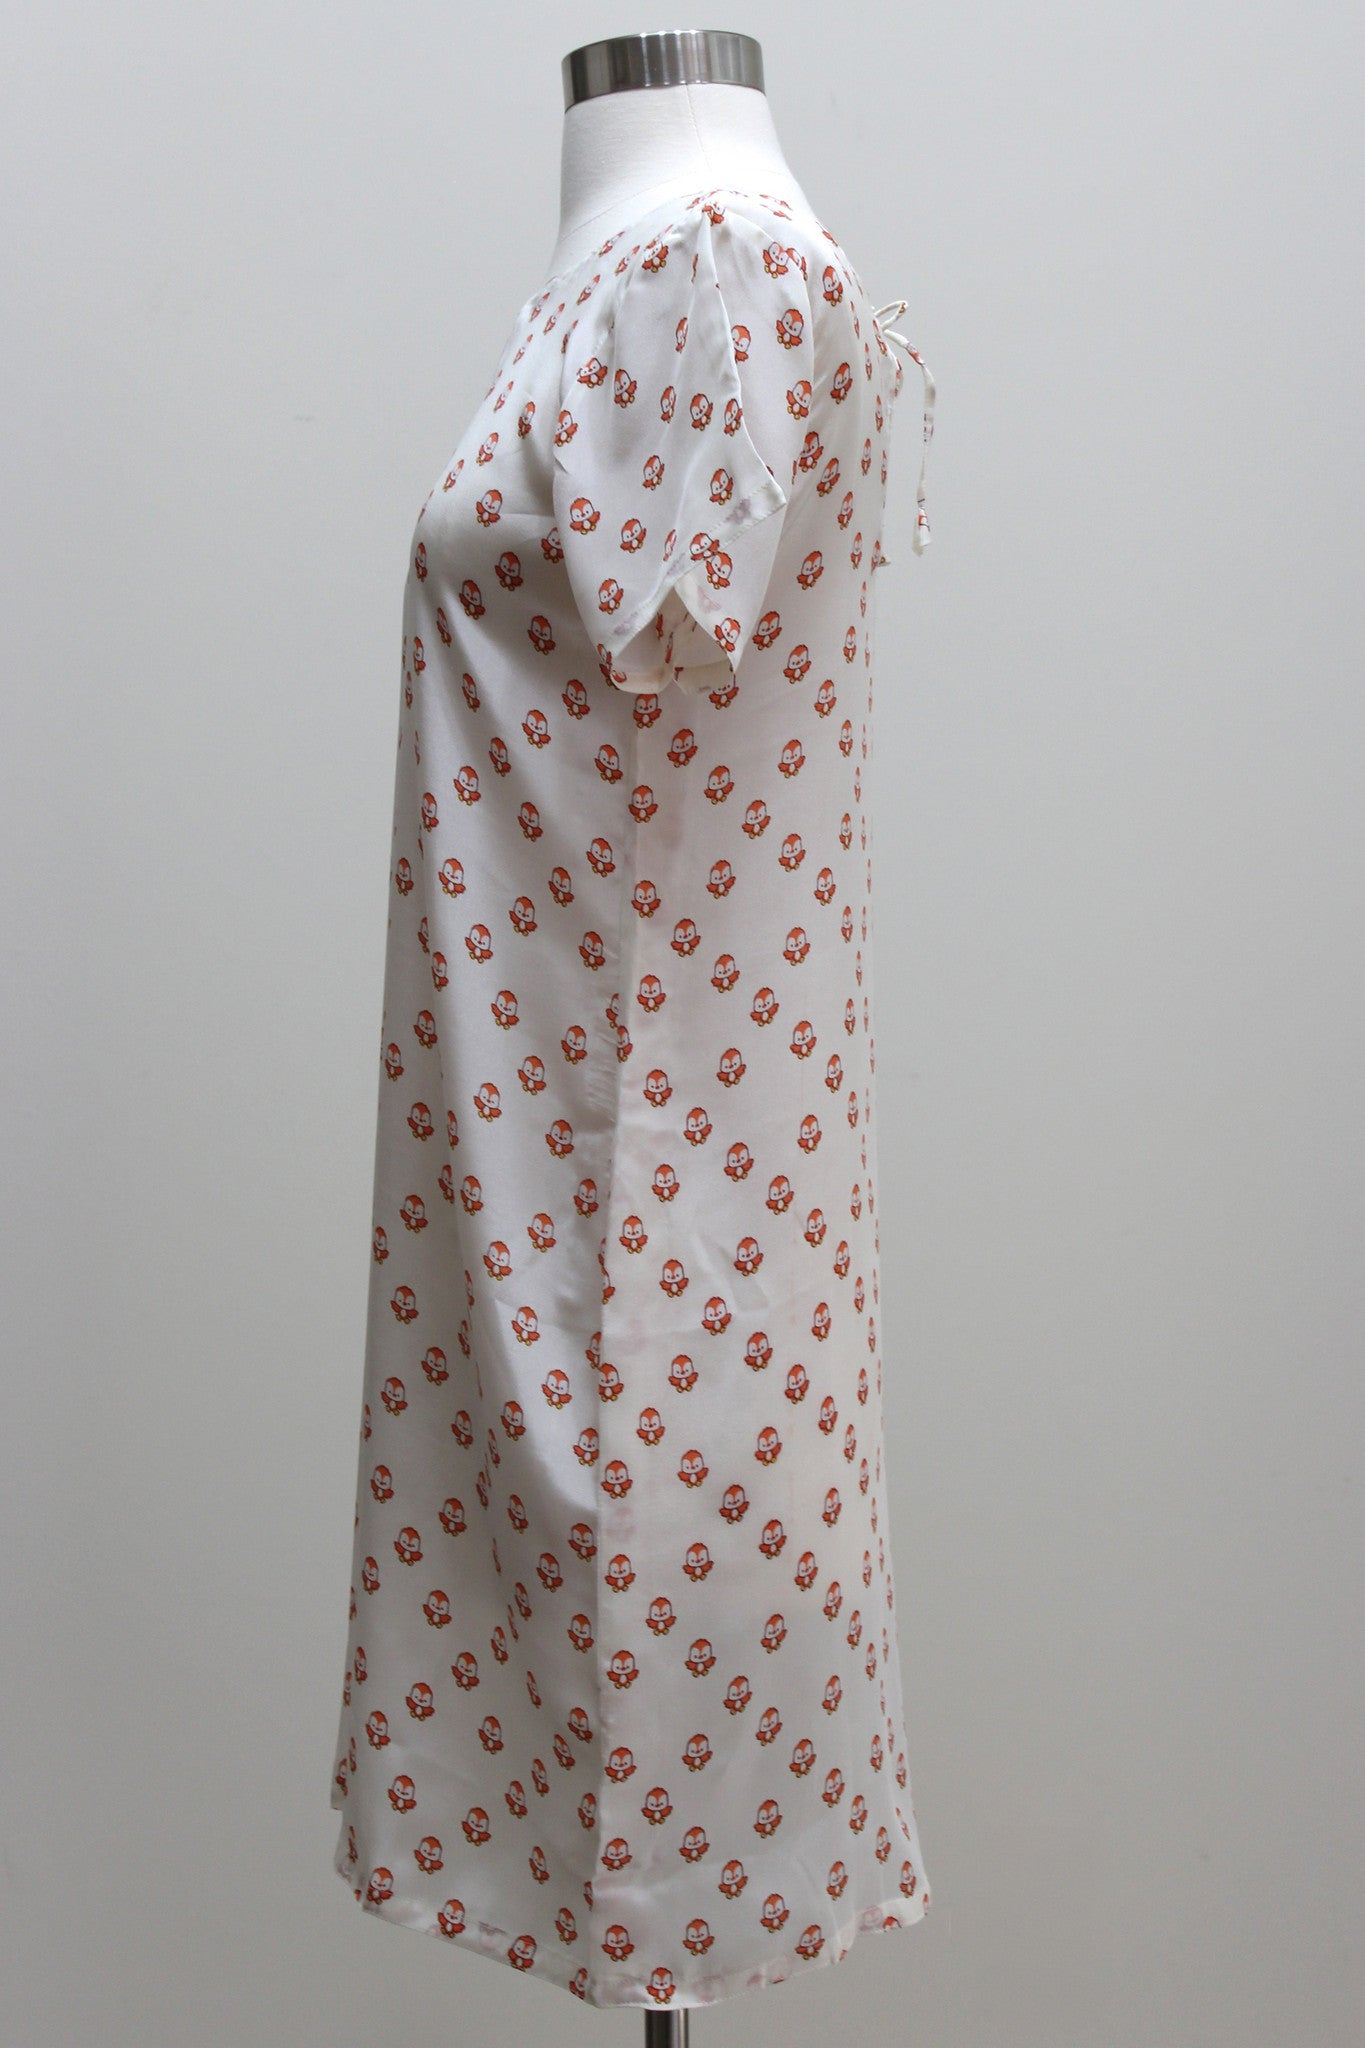 Silk Dress - Cute Bird Print